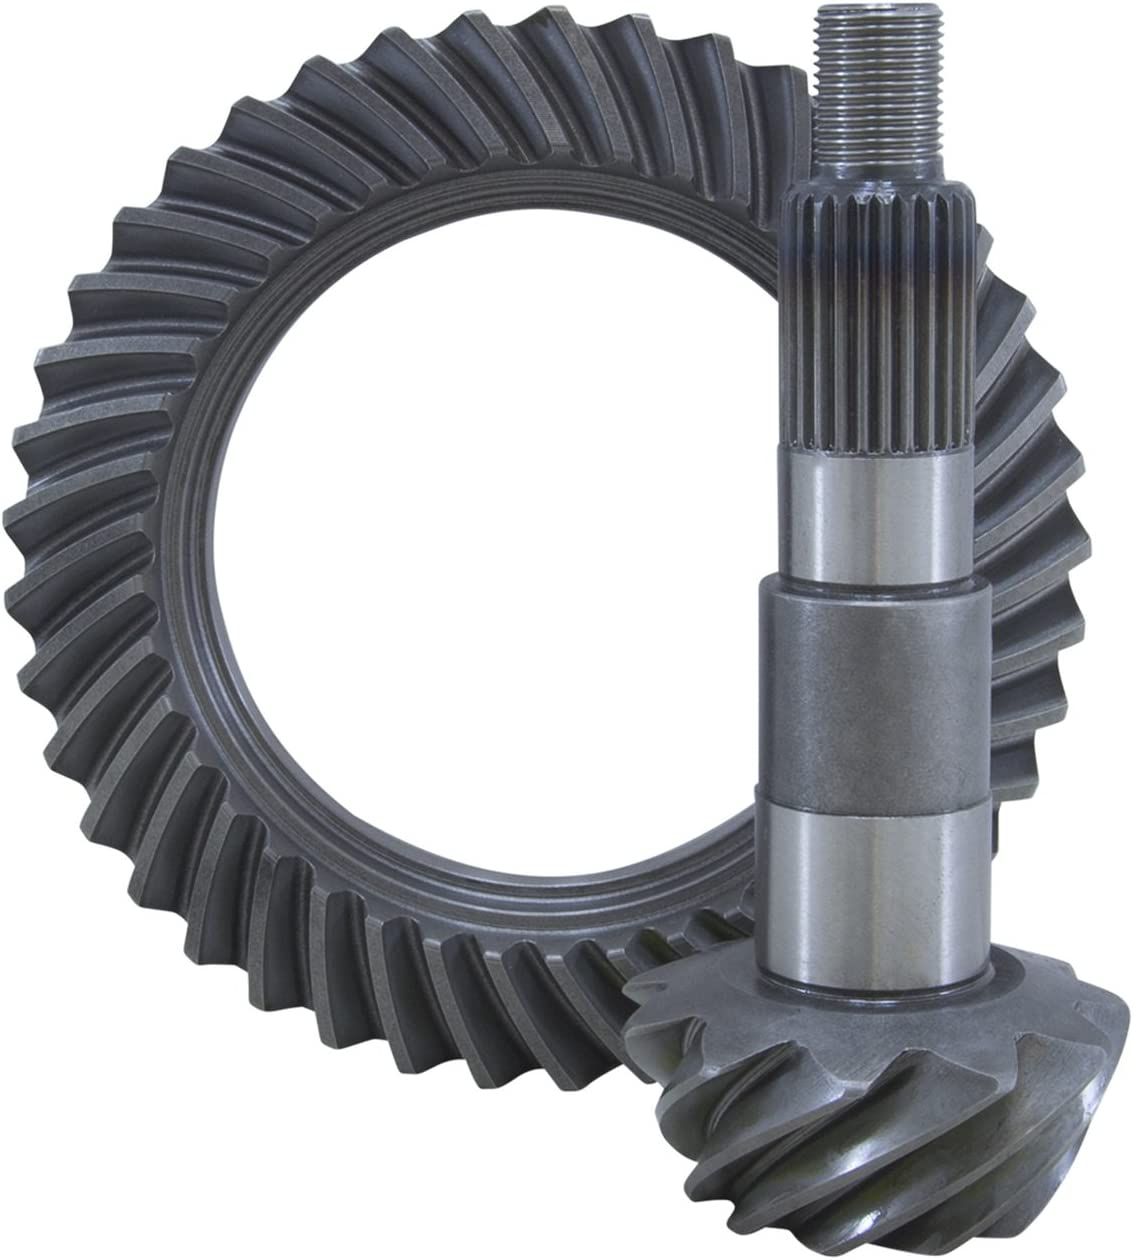 Yukon Gear /& Axle High Performance Ring /& Pinion Gear Set for Dana 30 Reverse Rotation Differential YG D30R-354R